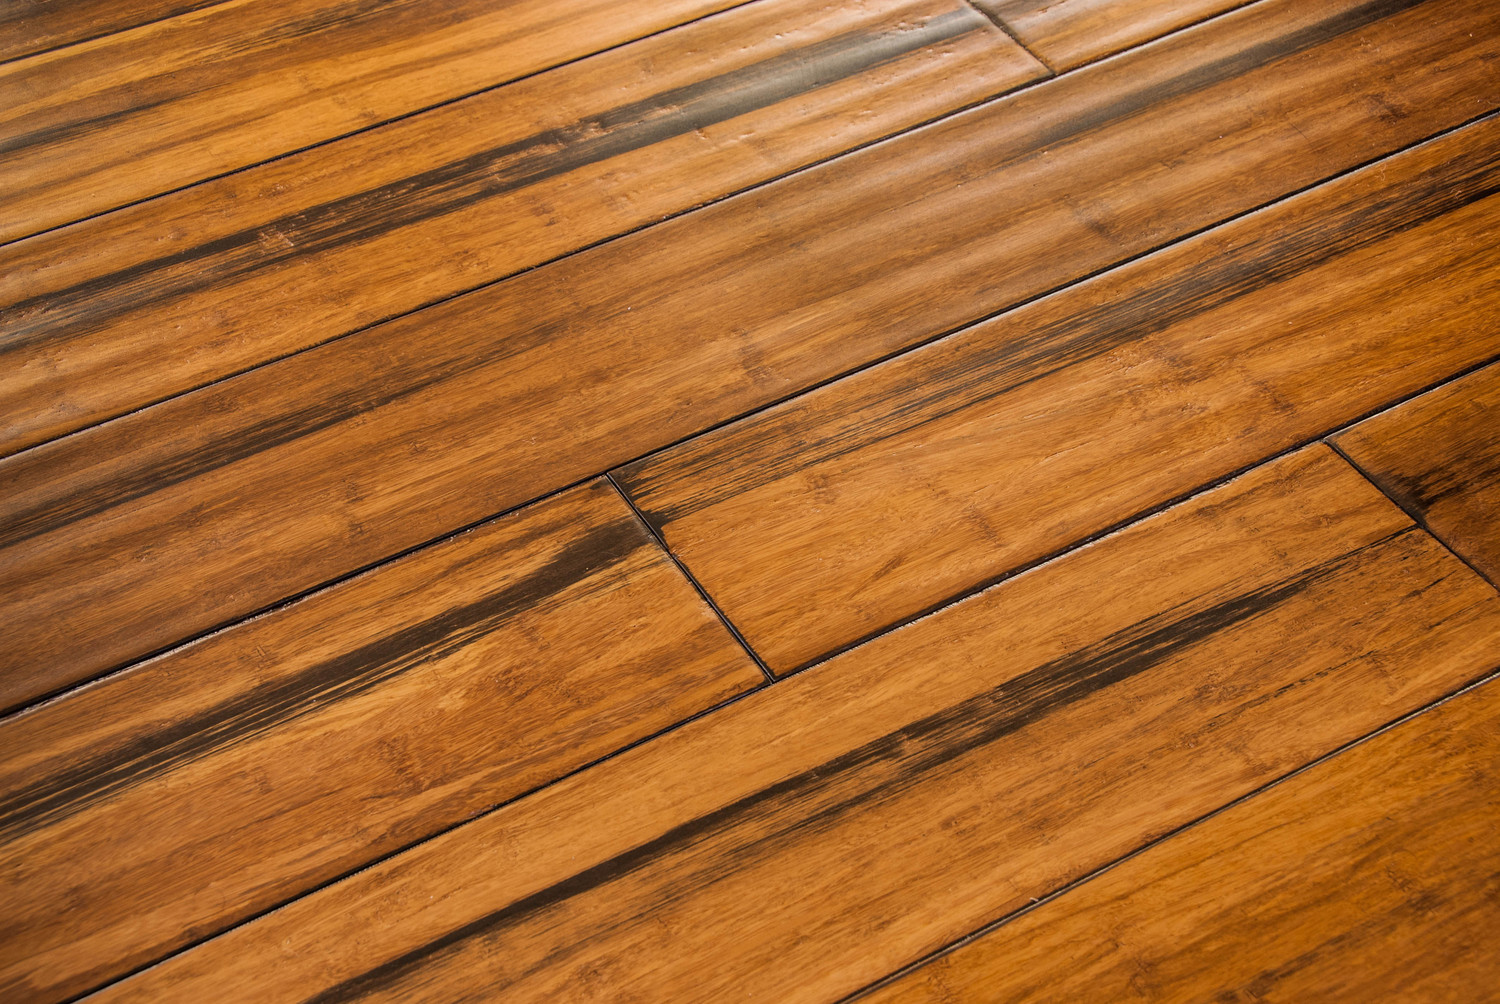 Best Hardwood Floor For Dogs awesome best wood flooring for dogs best hardwood floors for dogs 1 Best Hardwood Floor Finishes Dogs Hardwood Floor